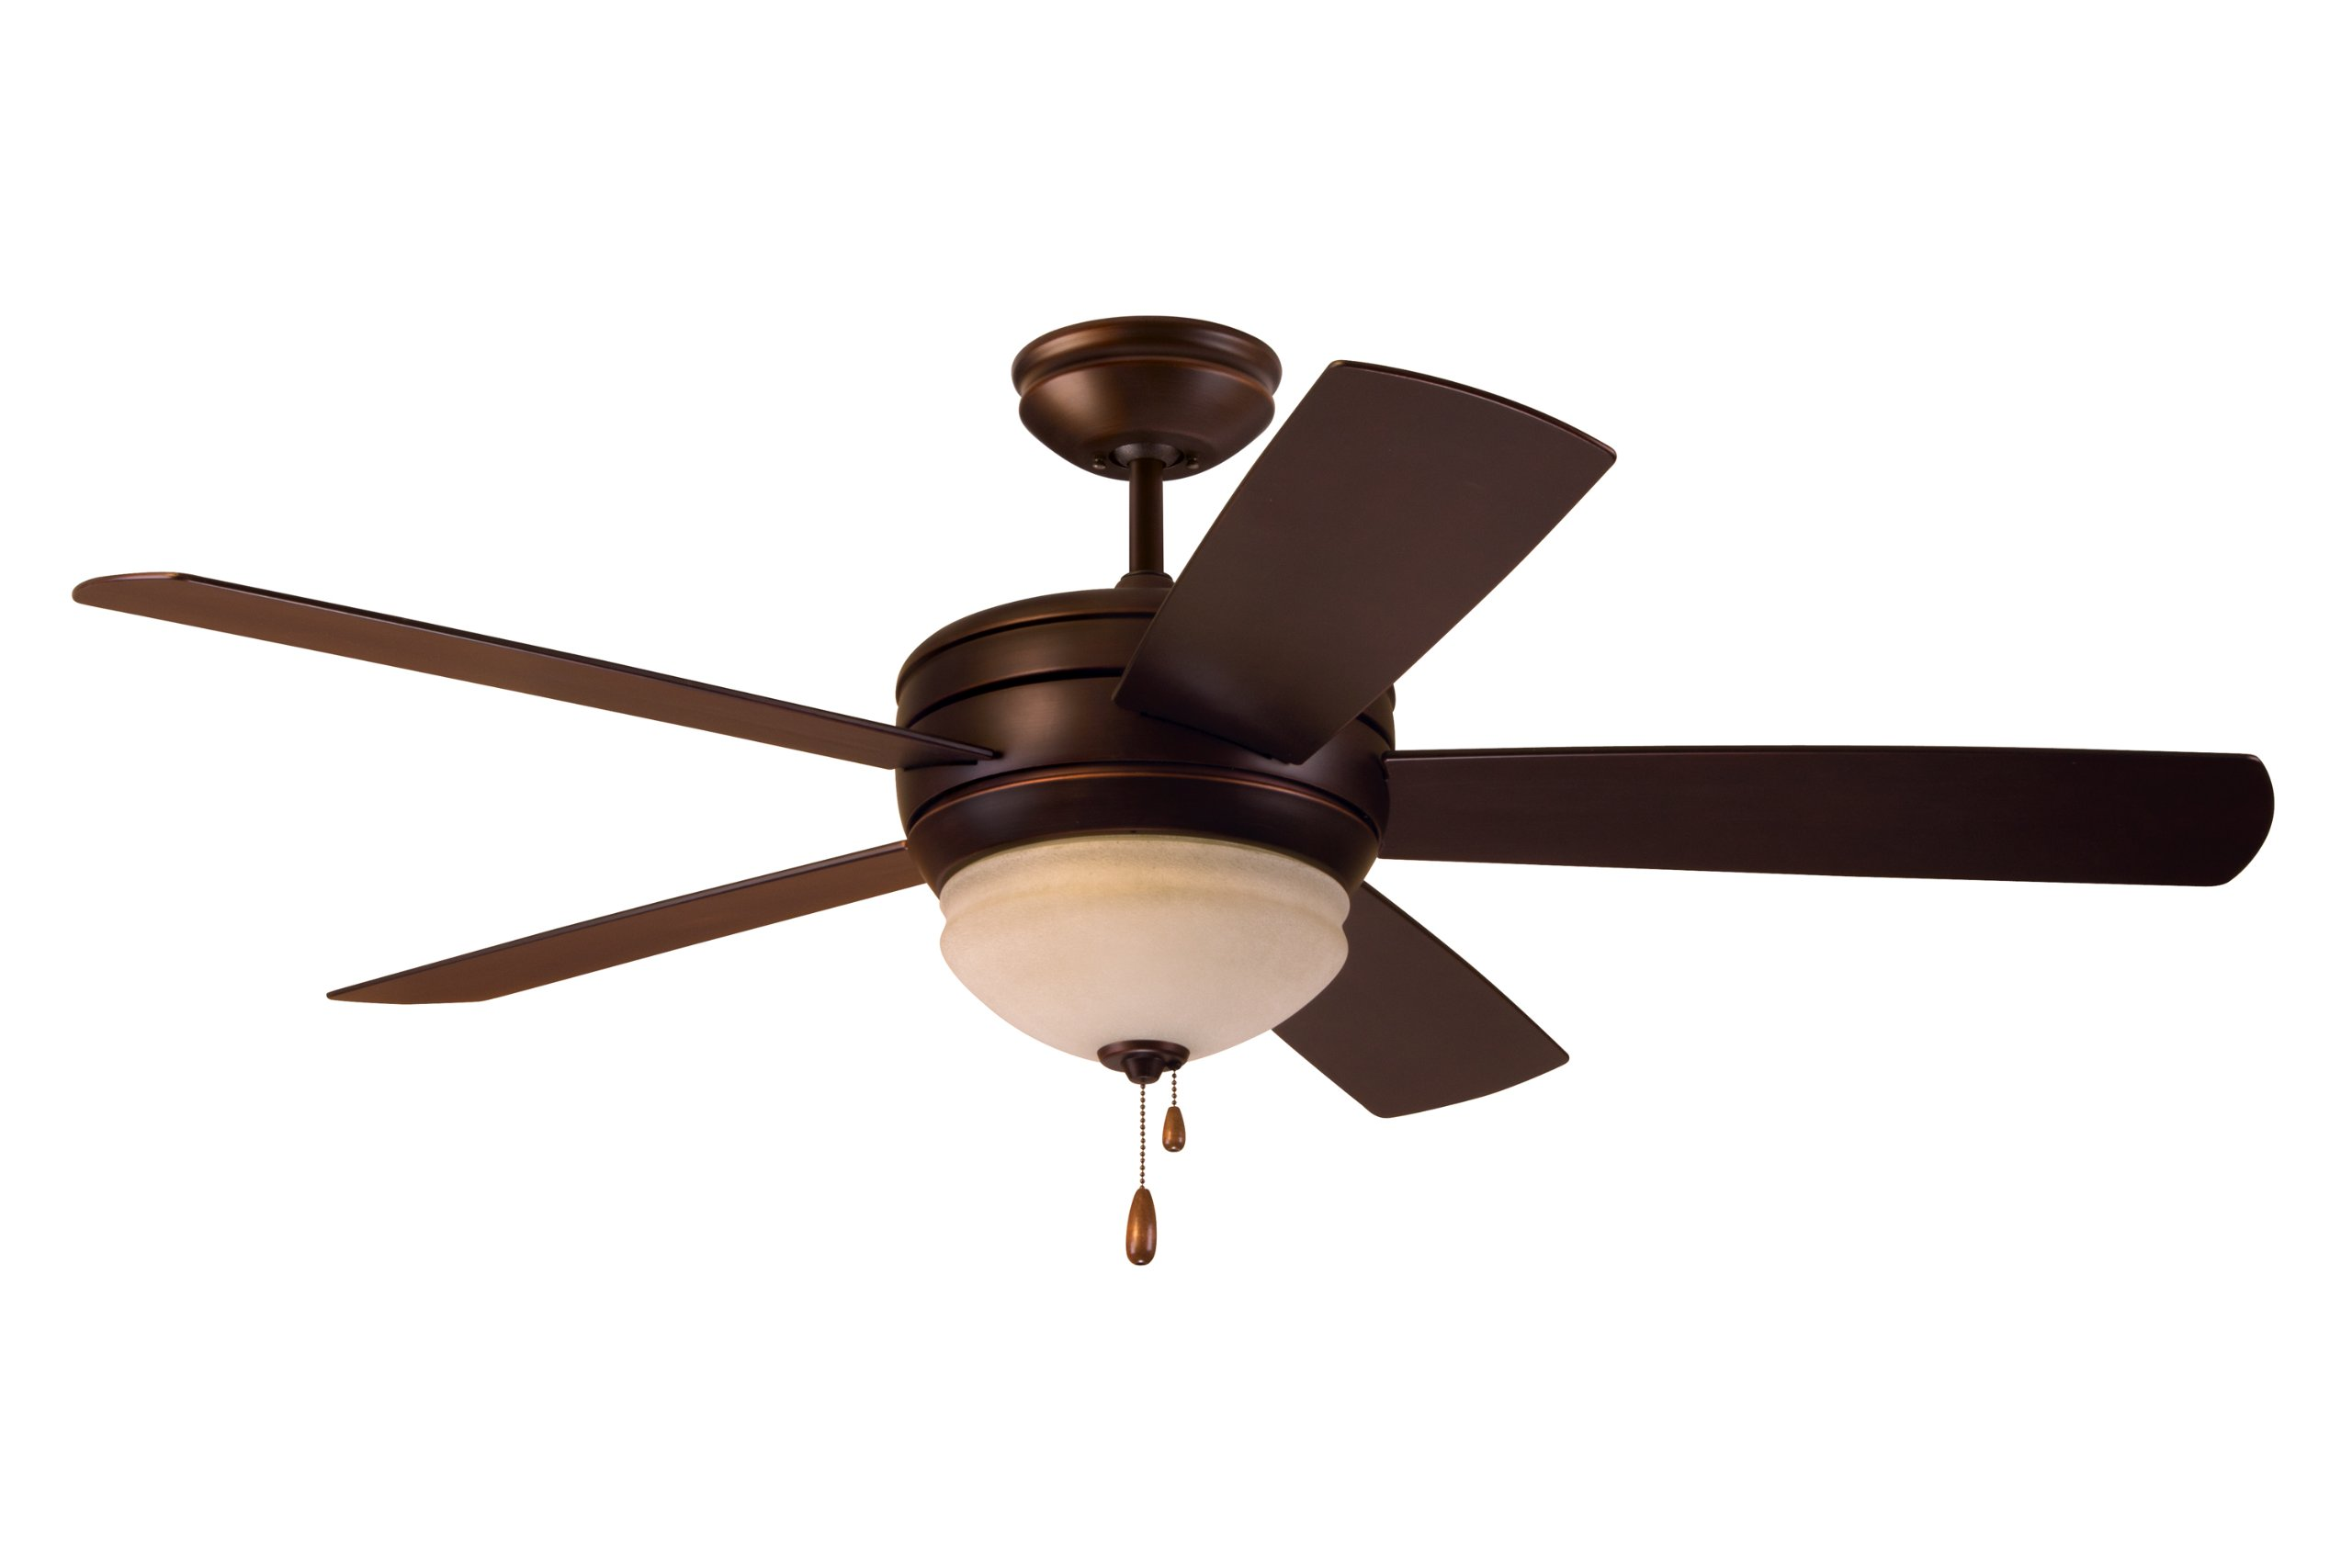 Emerson Ceiling Fans CF850VNB Summerhaven 52-Inch Indoor Outdoor Ceiling Fan with Light, Wet Rated Ceiling Fans in Venetian Bronze Finish